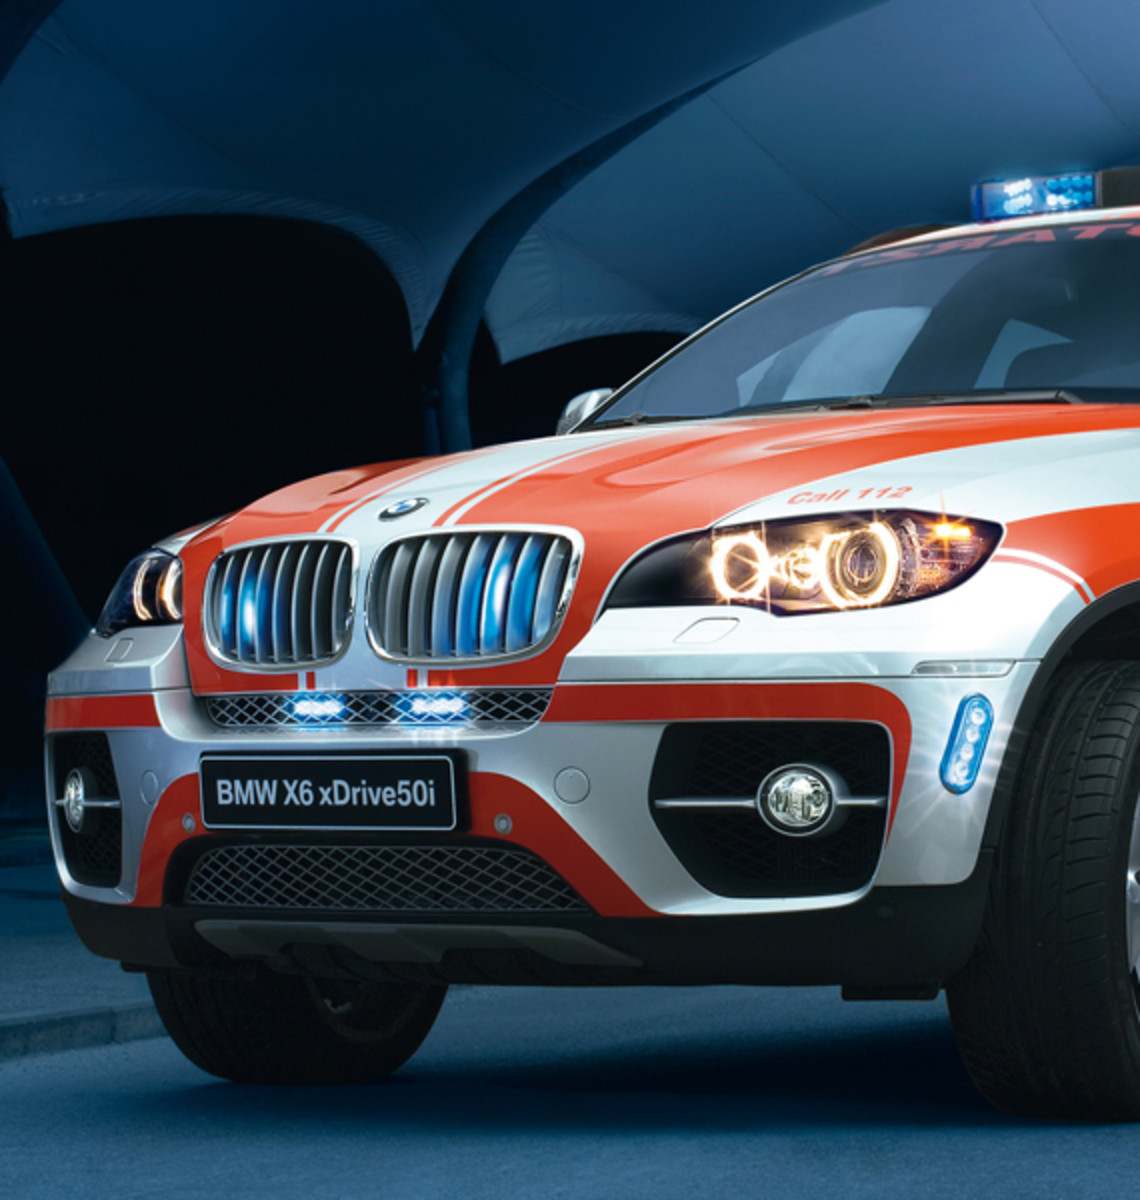 bmw-x6-emergency-vehicle-concept-03